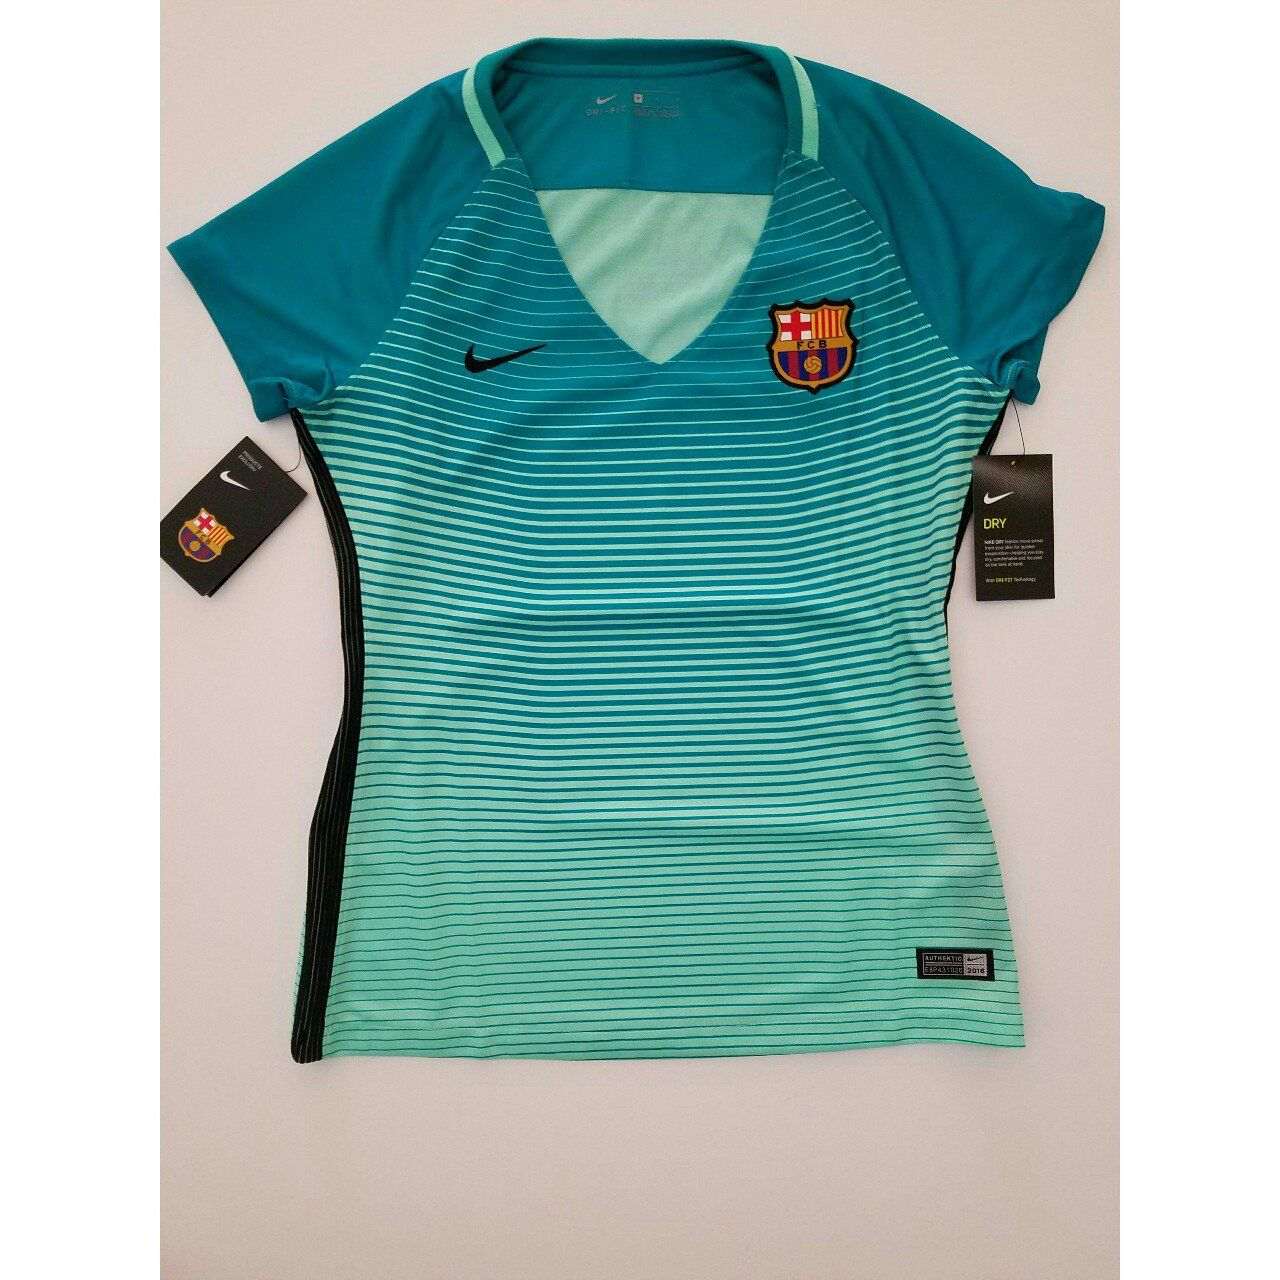 78b069b0a NIKE FC BARCELONA WOMEN'S THIRD JERSEY 2016/17 NEW WITH TAGS! Mes Que Un